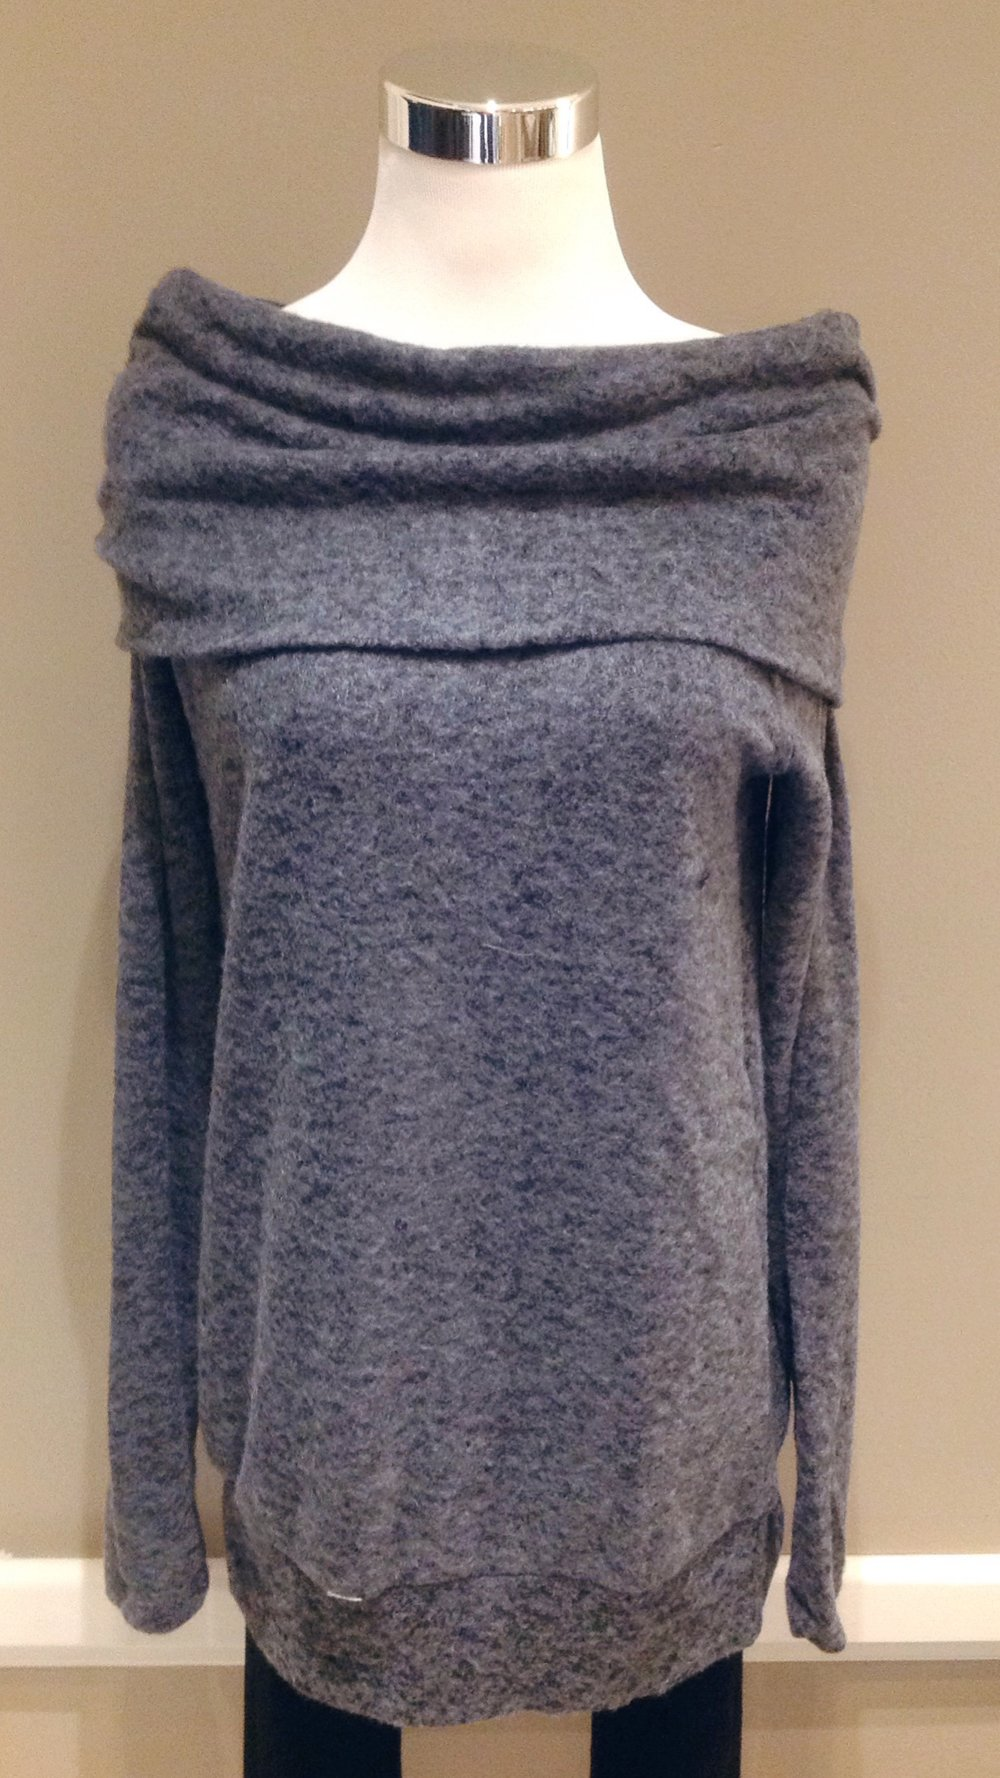 Fleecy off-the-shoulder sweater in charcoal, $38